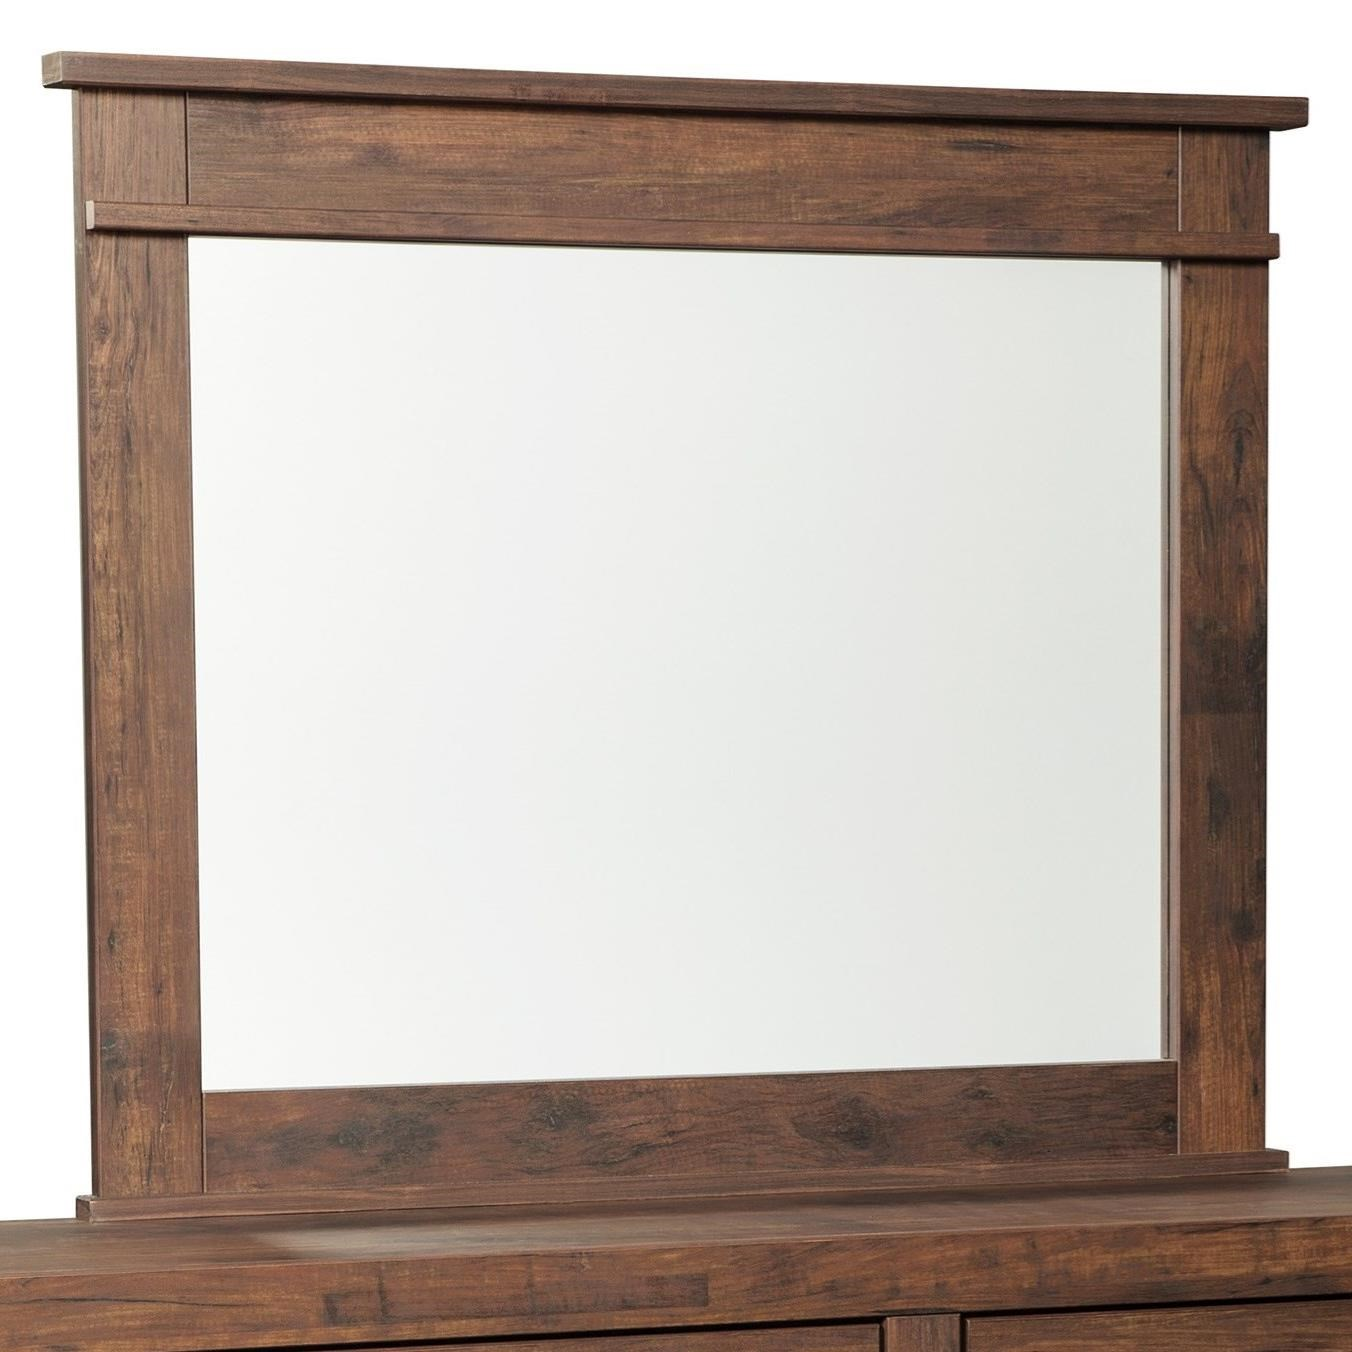 Signature Design by Ashley Hammerstead Rectangular Mirror - Item Number: B407-36